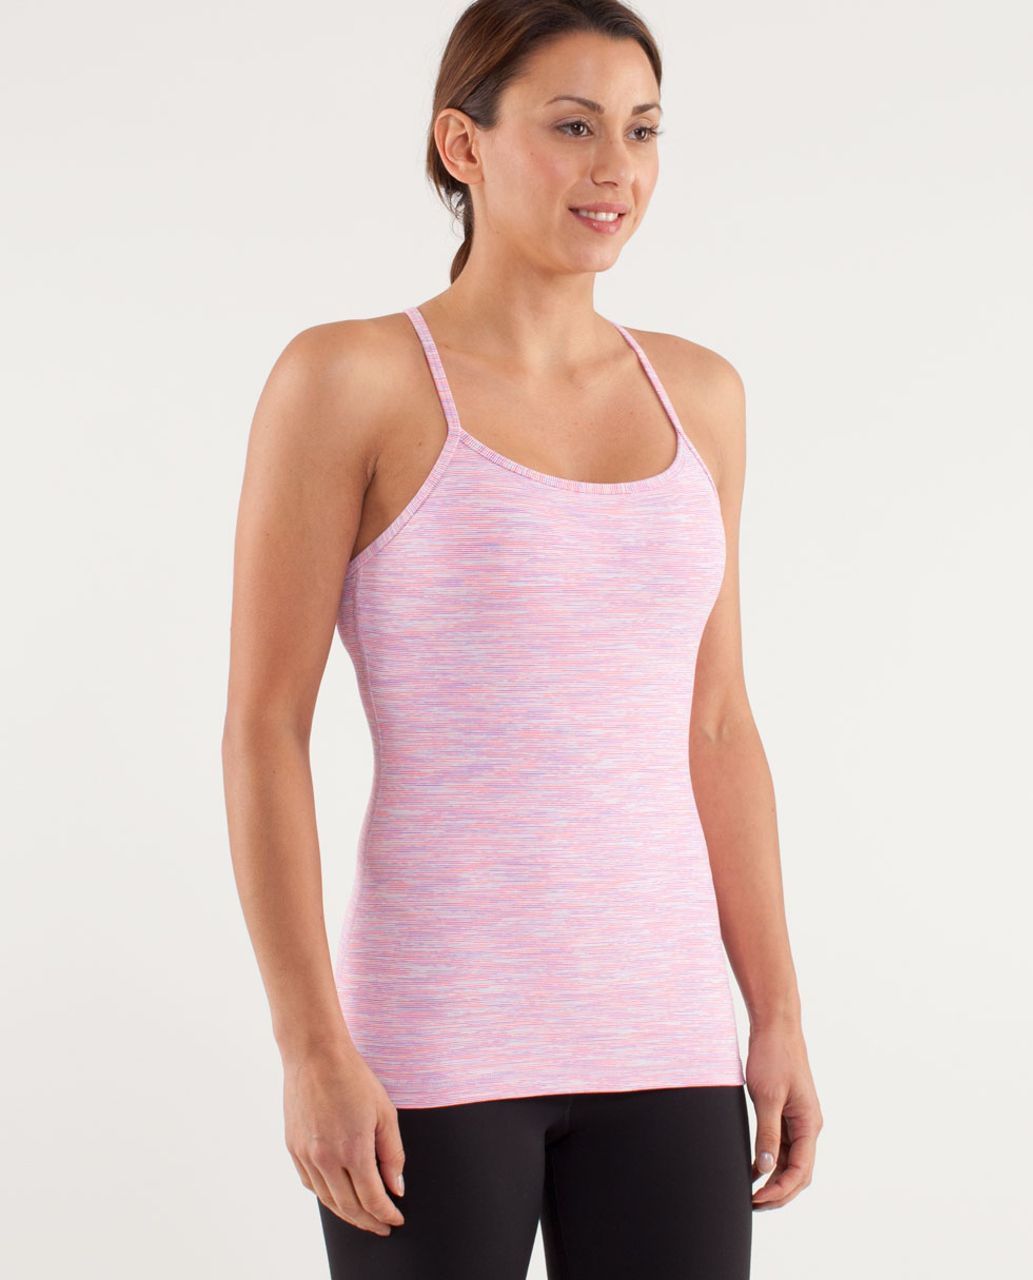 Lululemon Power Y Tank - Wee Are From Space White April Multi